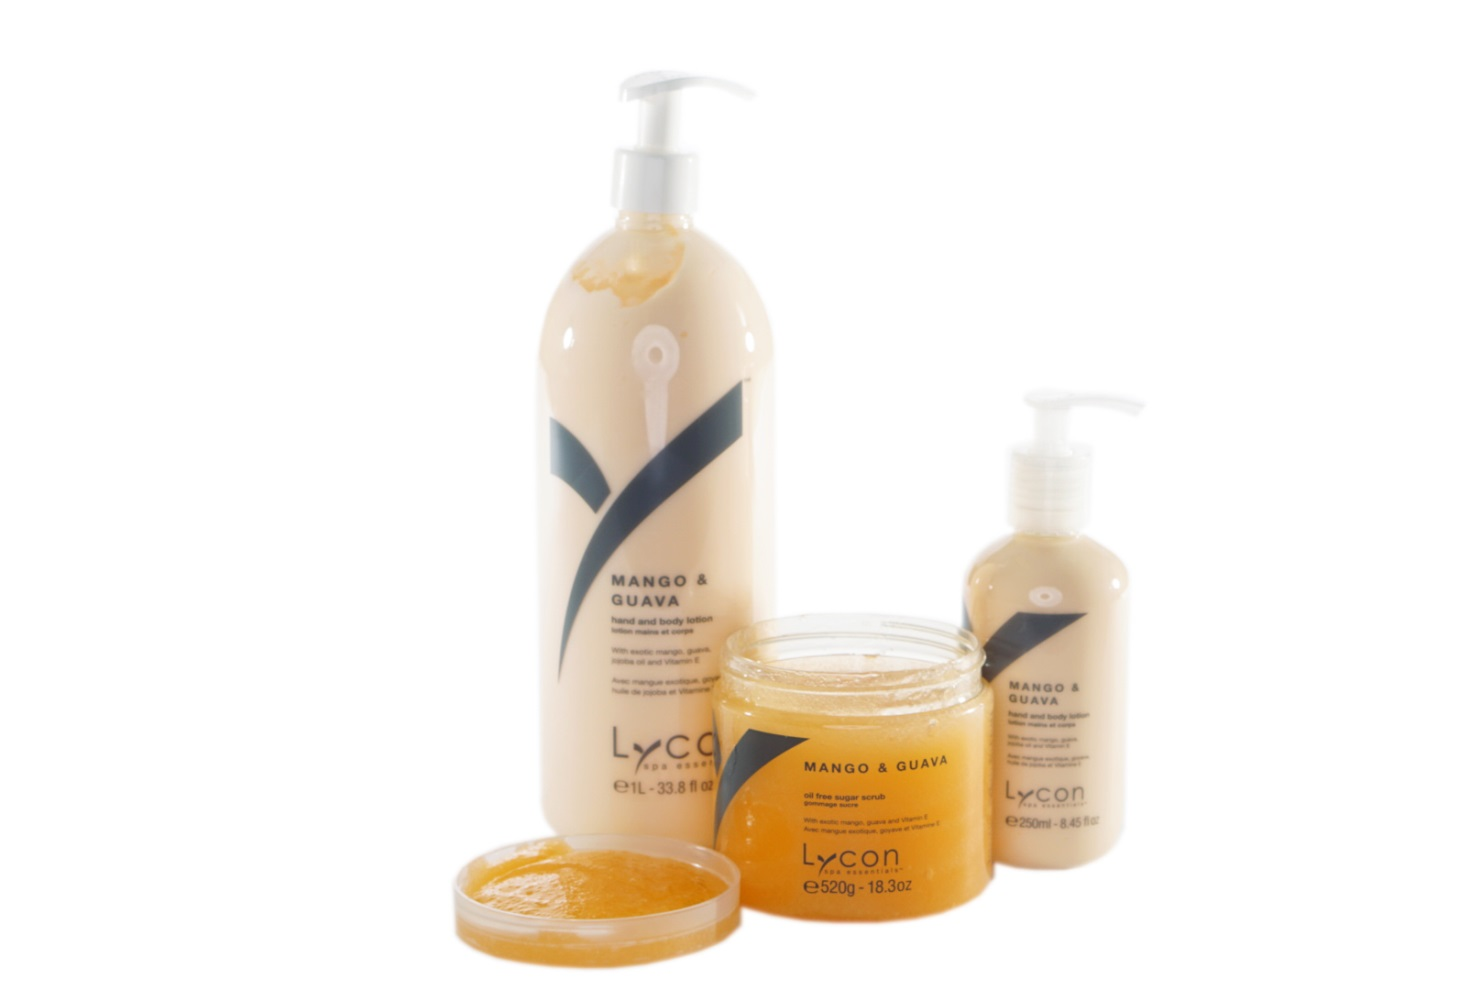 Lycon Spa Essentials Body Lotions & Sugar Scrubs